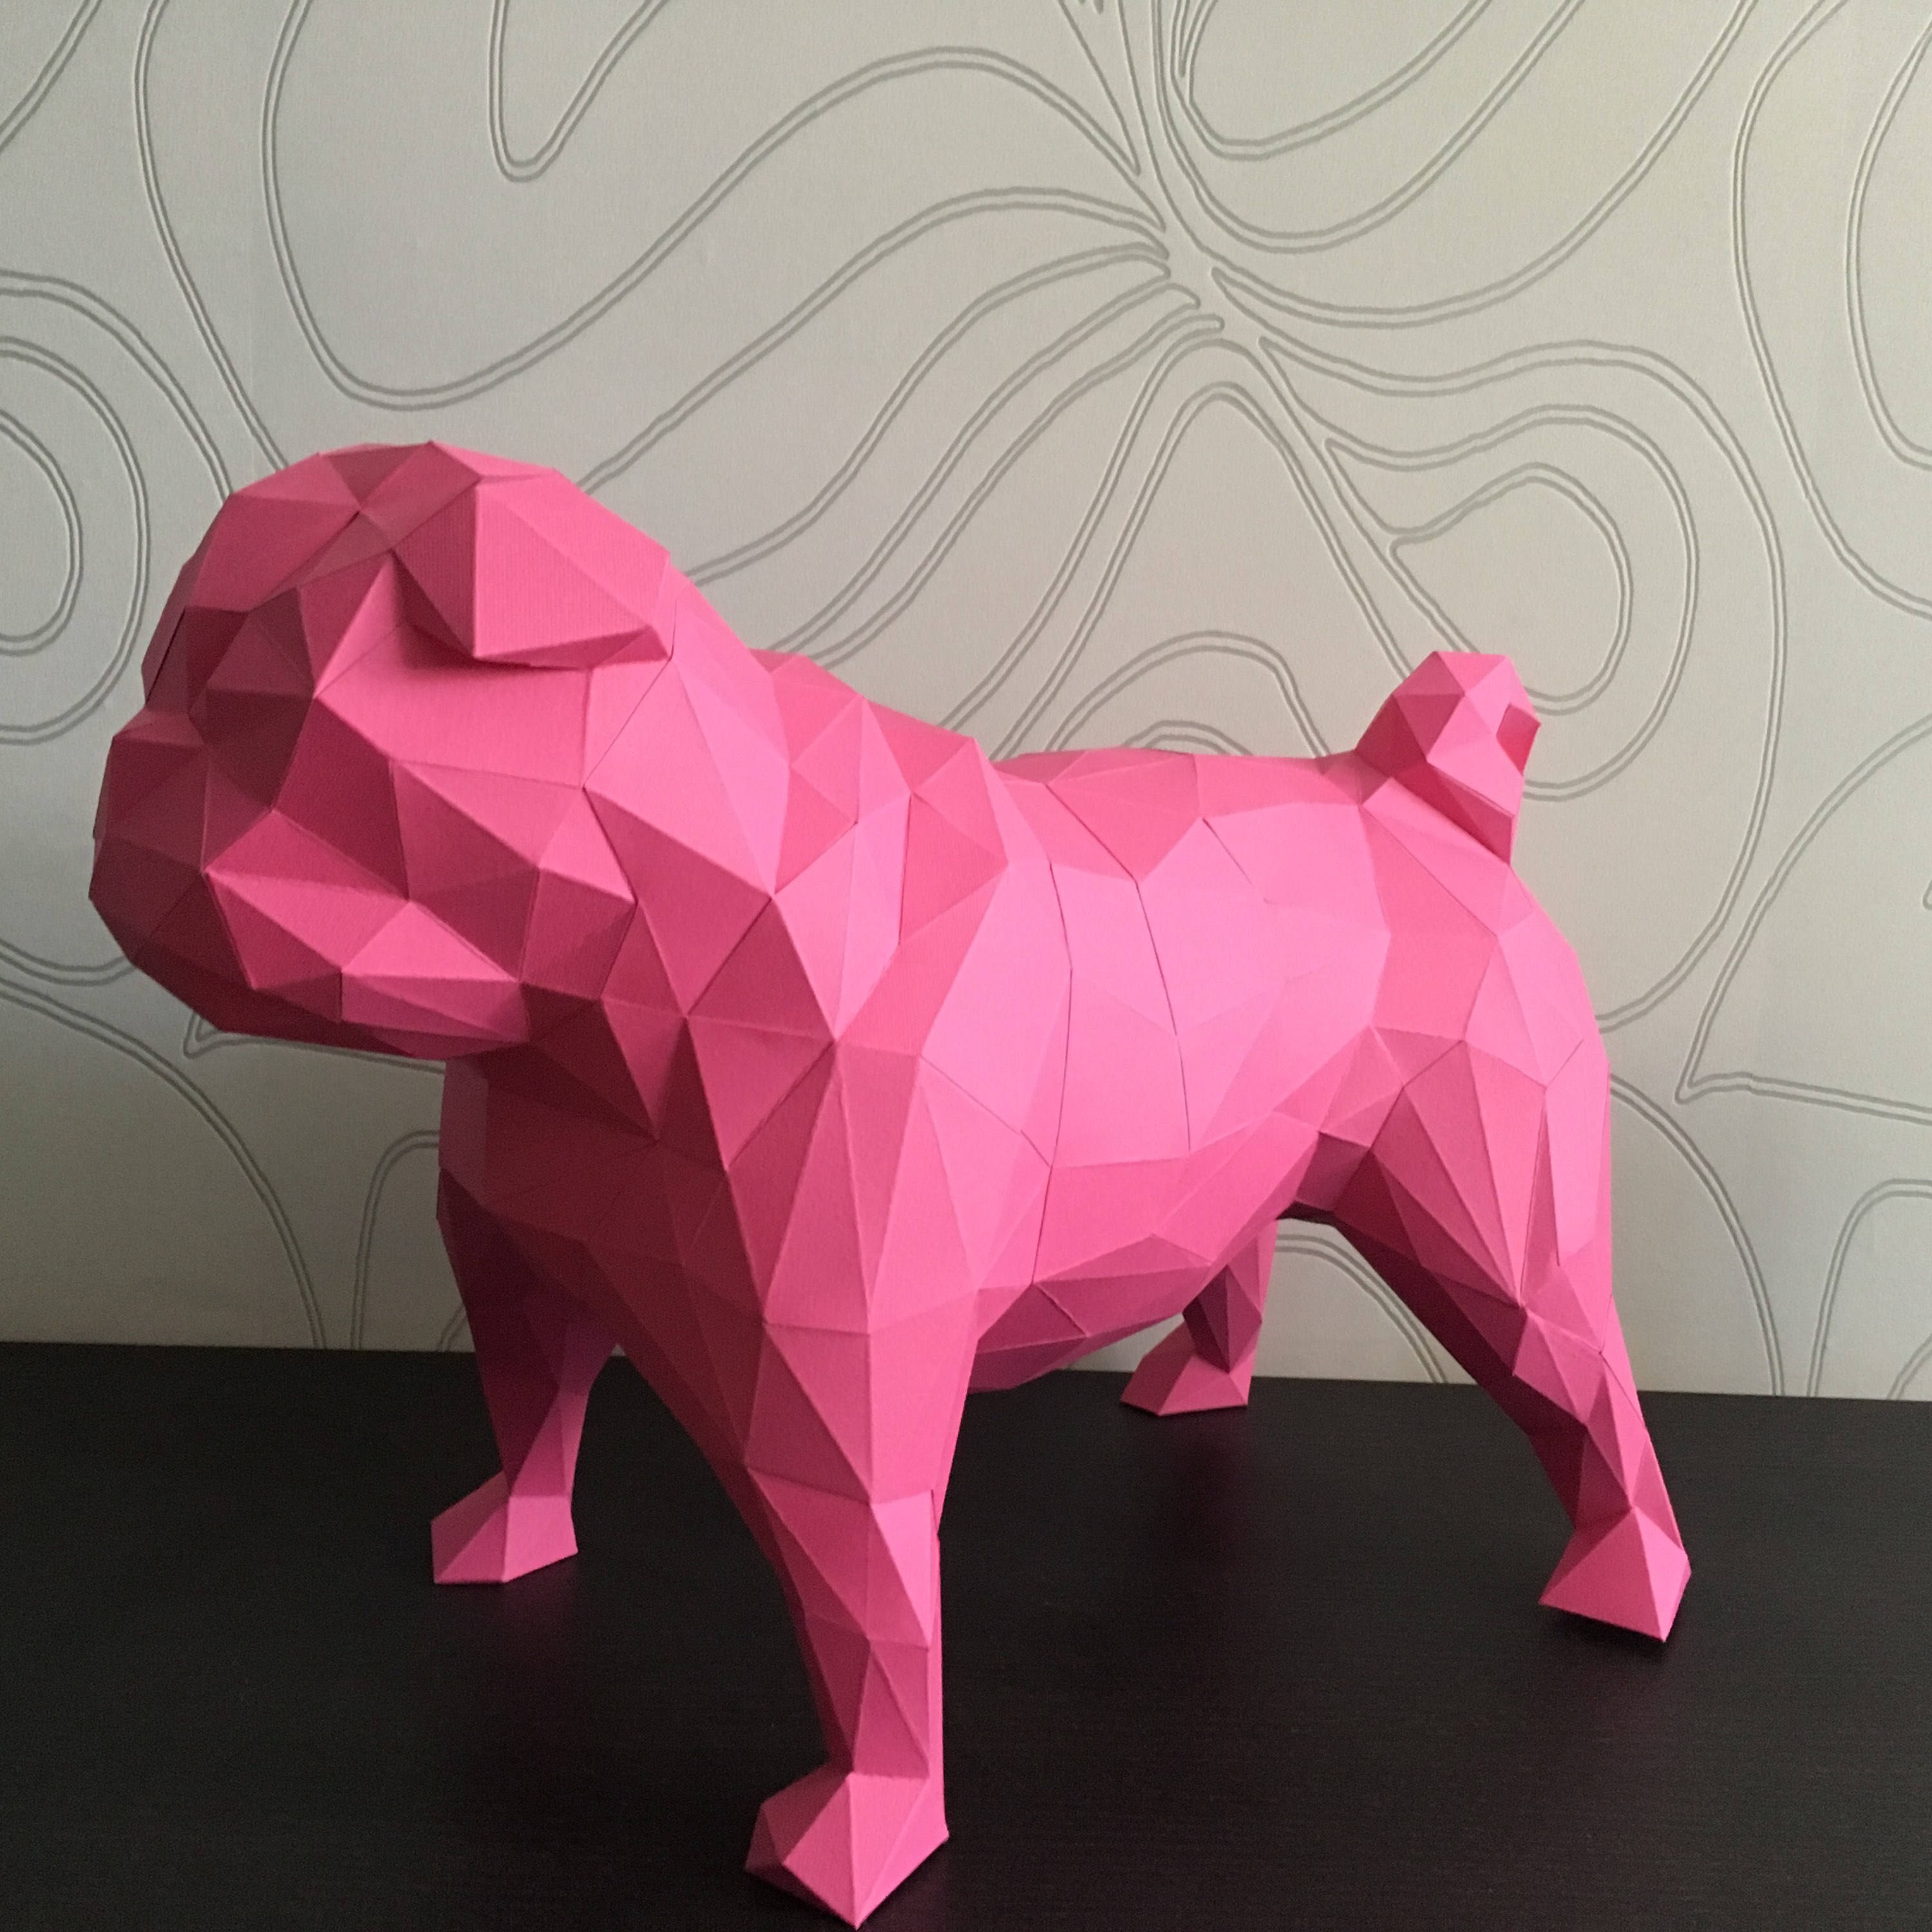 Pug Dog Papercraft, Paper Pug, Dog Statue, Puppy Pug, Paper Animals, Papertoy, Home Decor, Pug Dog, 3D papercraft model, lowpoly DIY, hobby example image 3